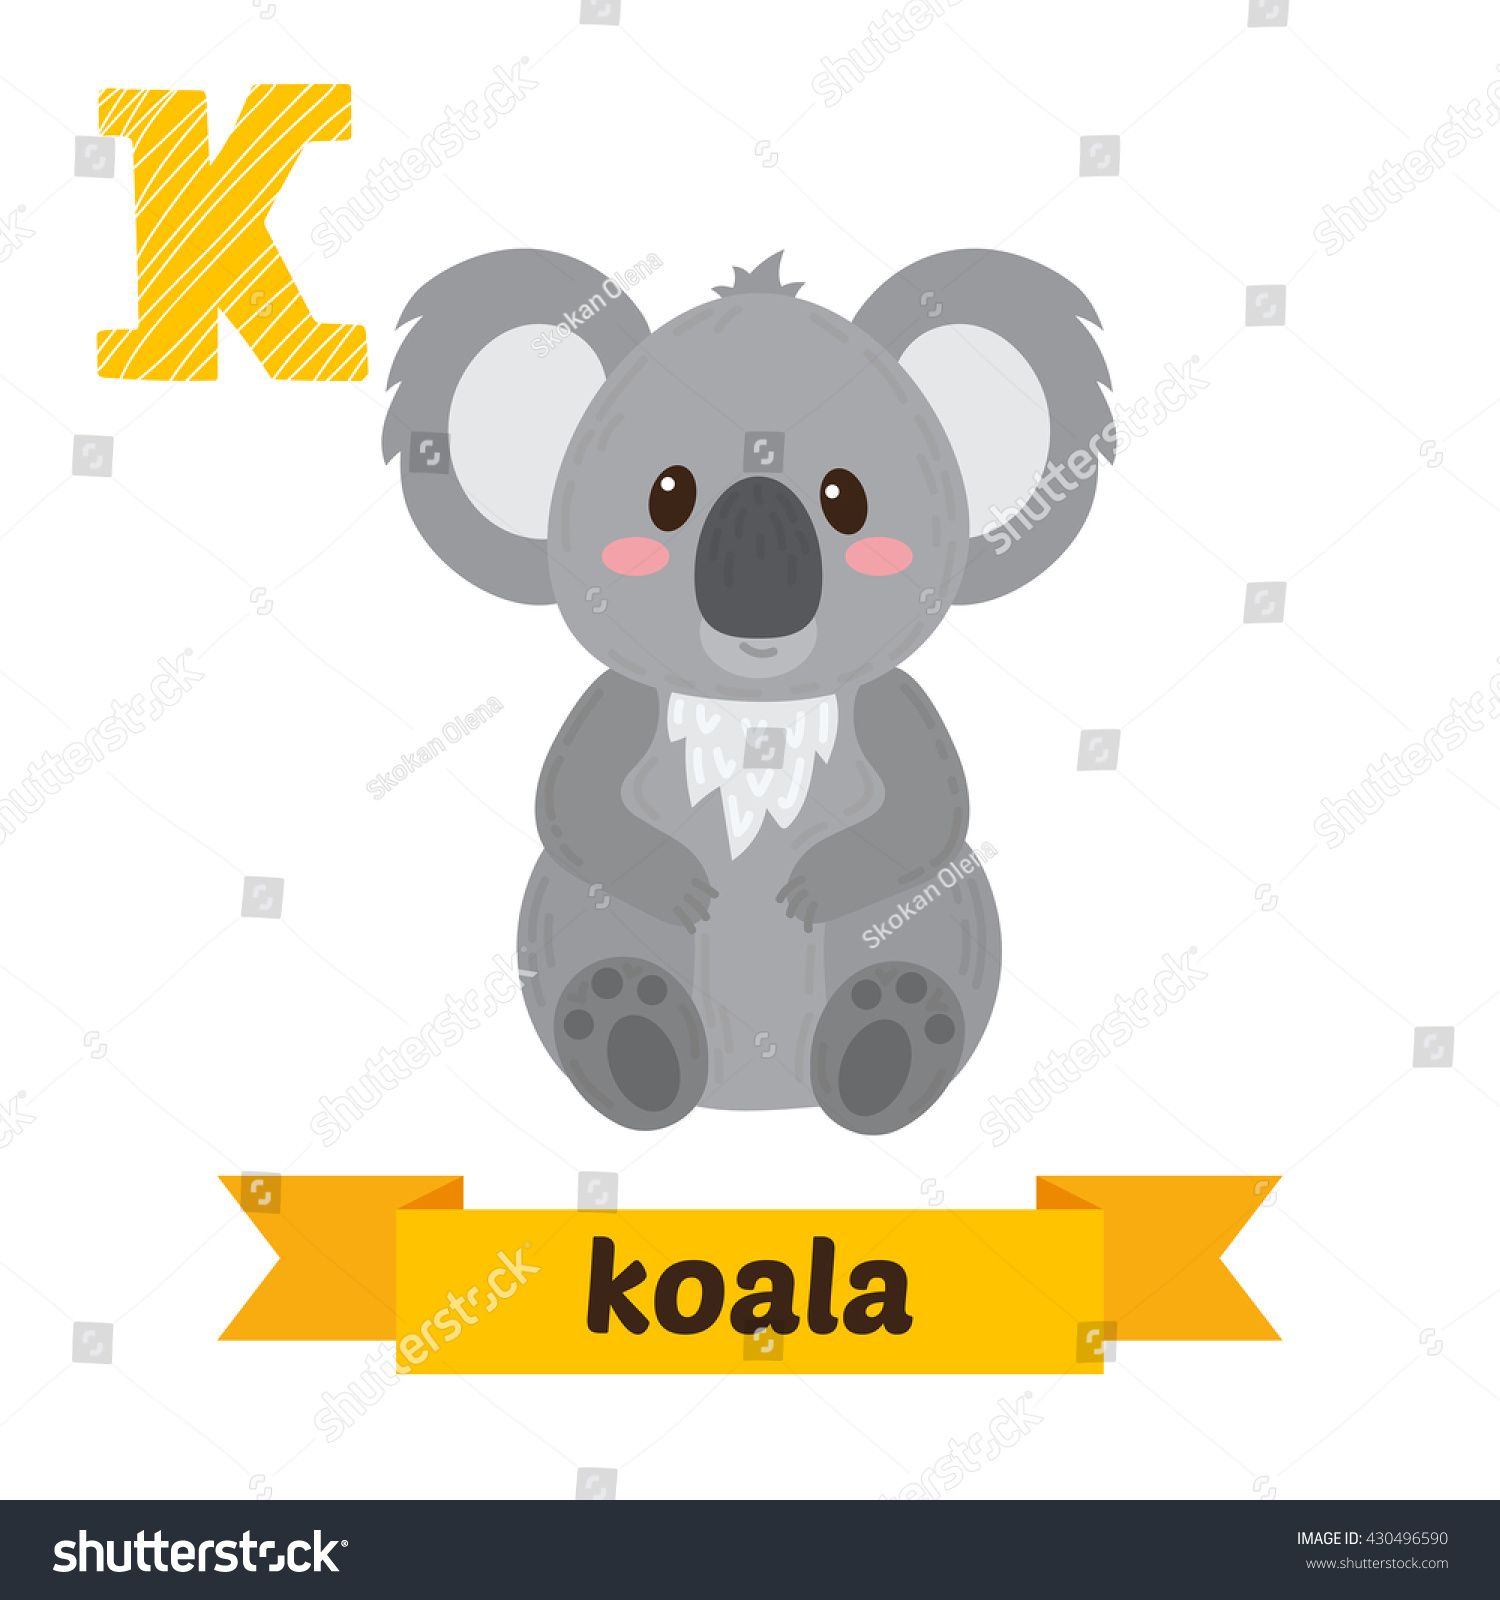 14++ Animal with letter k ideas